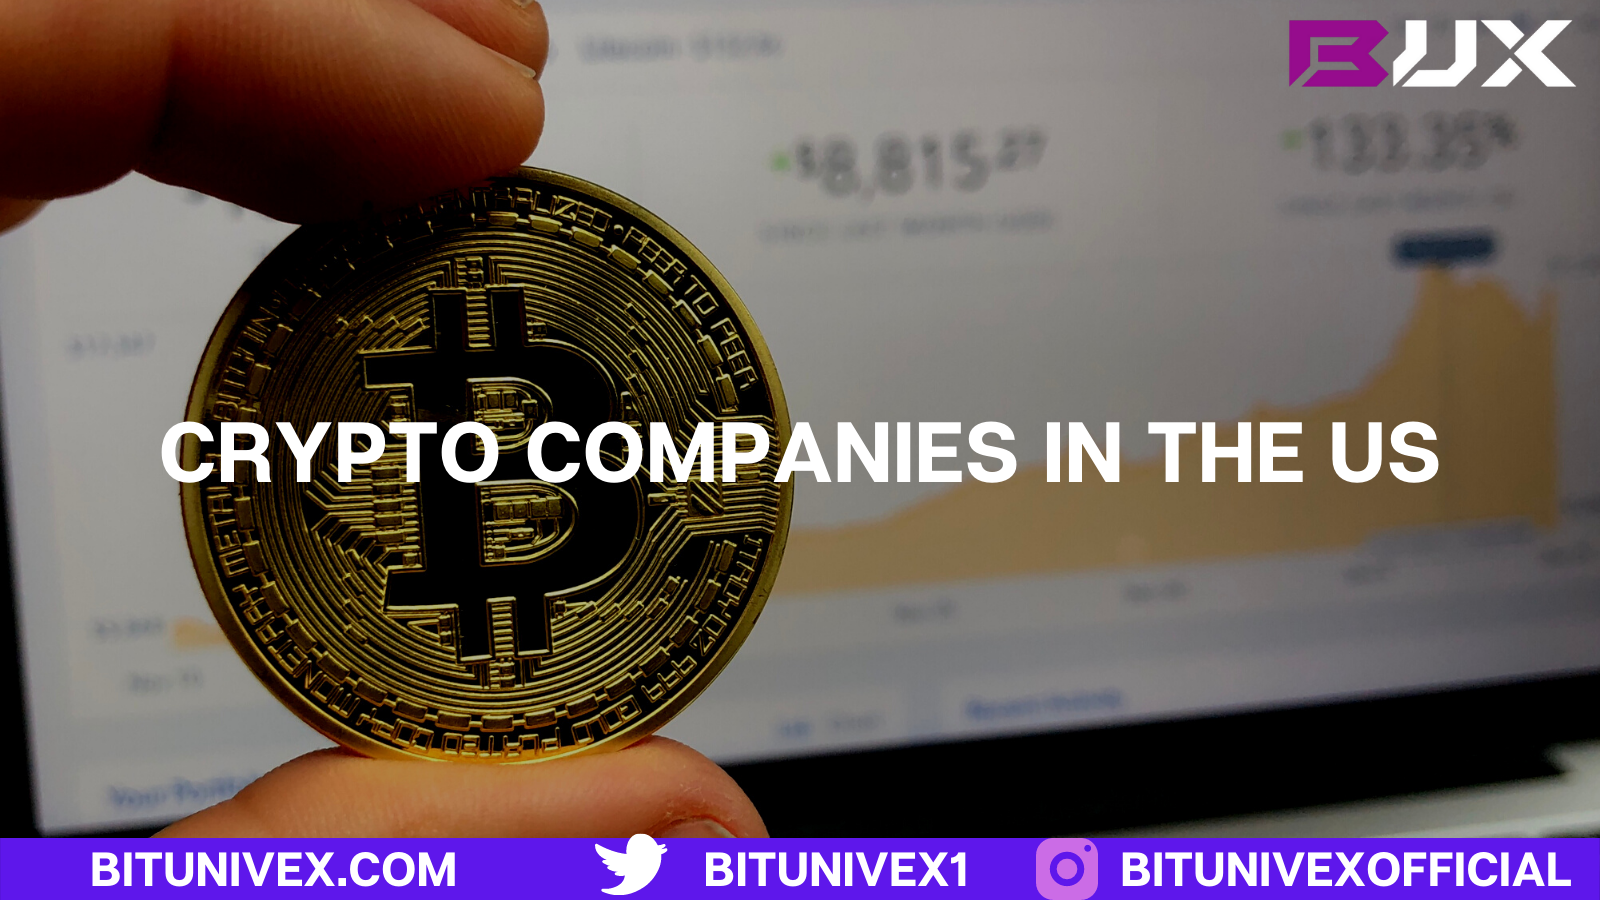 Crypto companies in the US